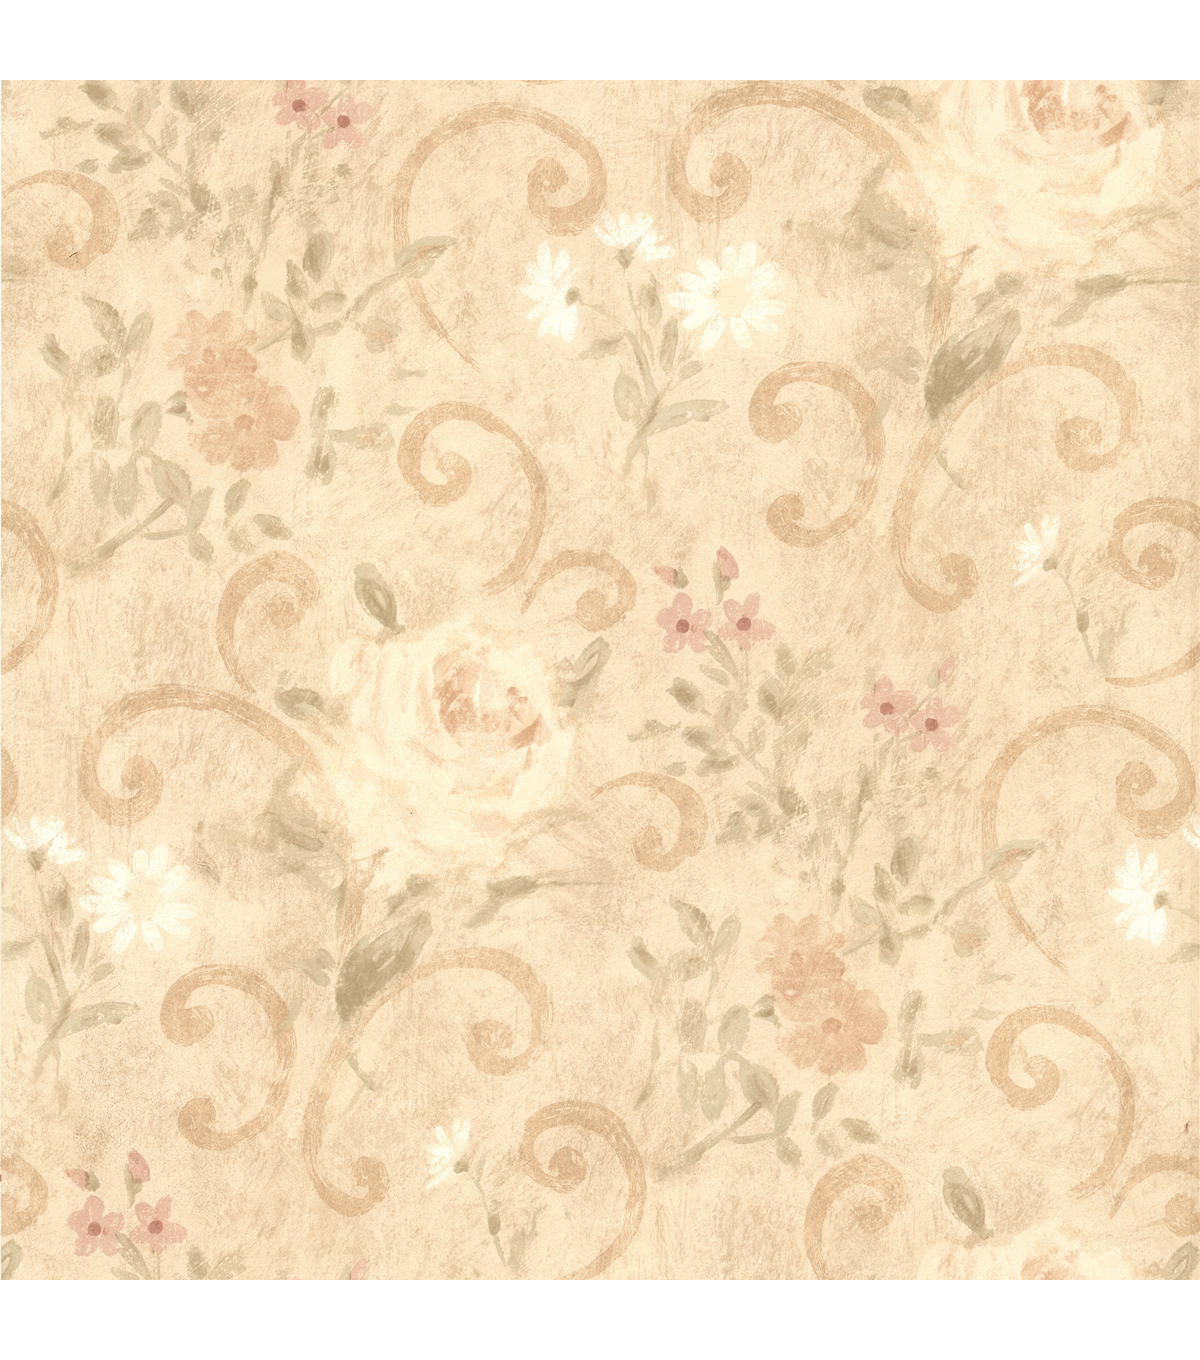 Uma Beige Floral Scroll Wallpaper Sample